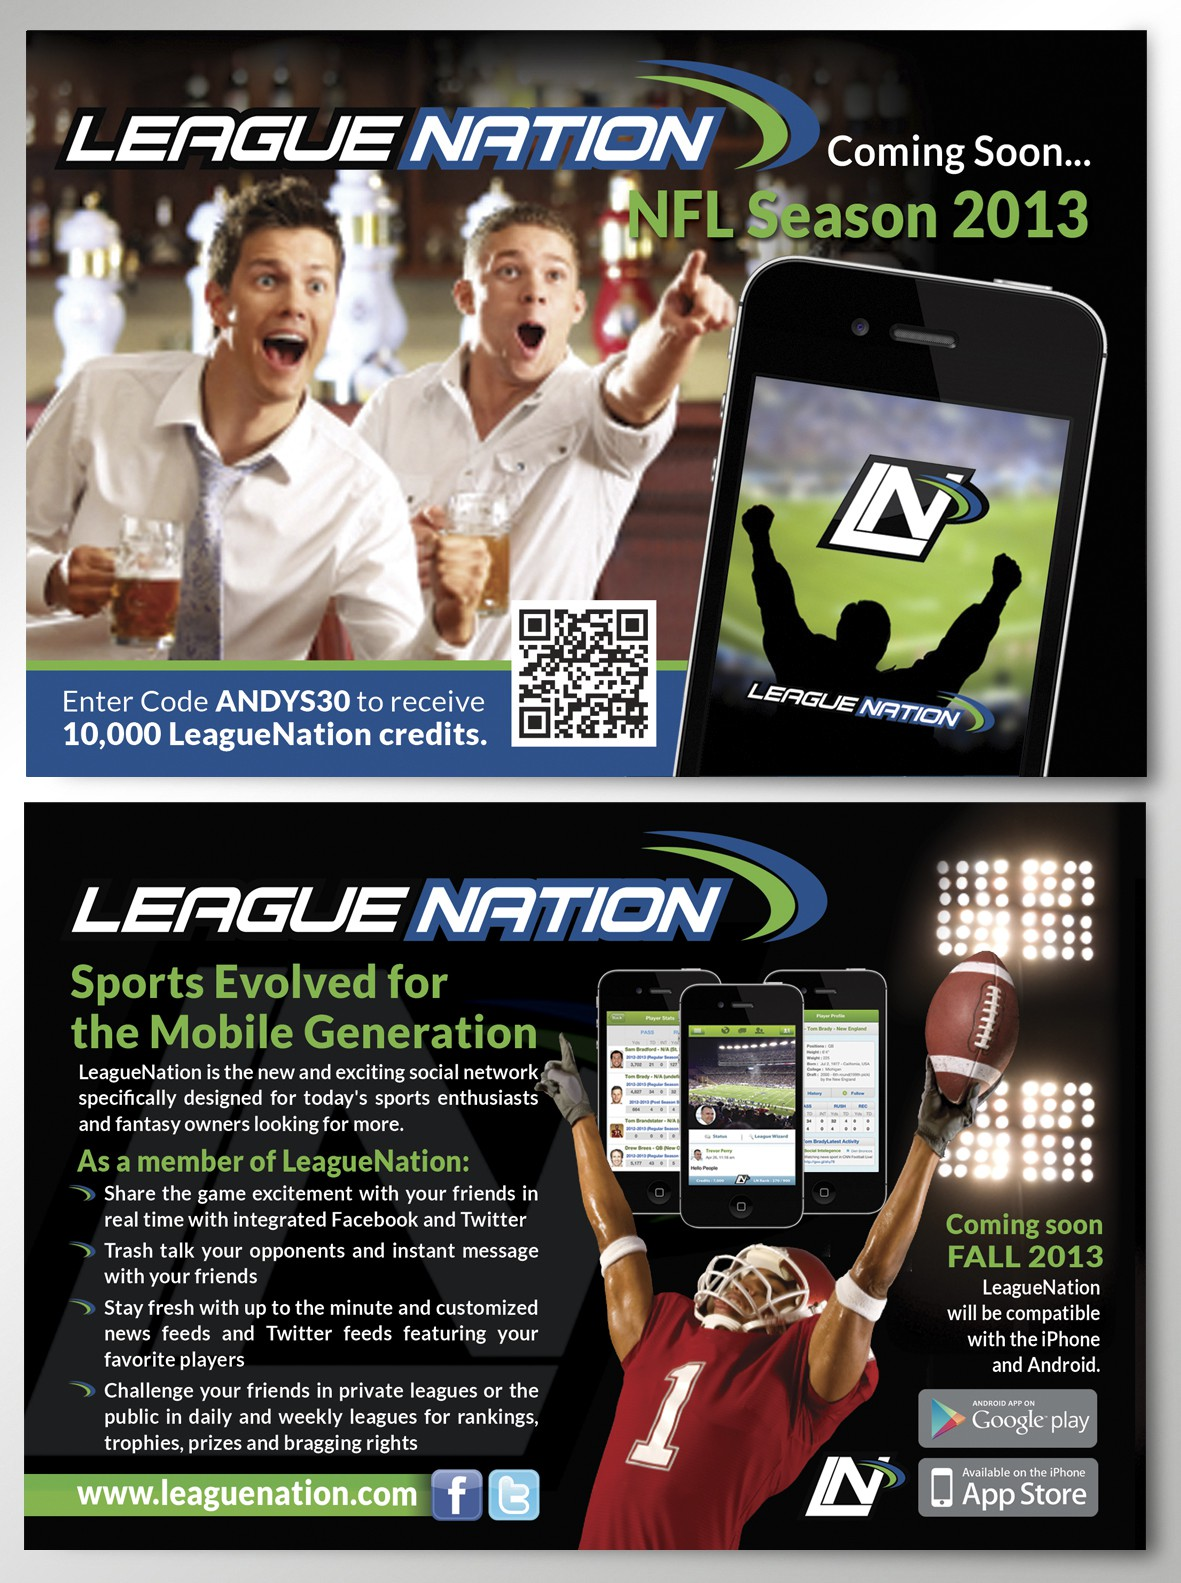 New postcard or flyer wanted for LeagueNation